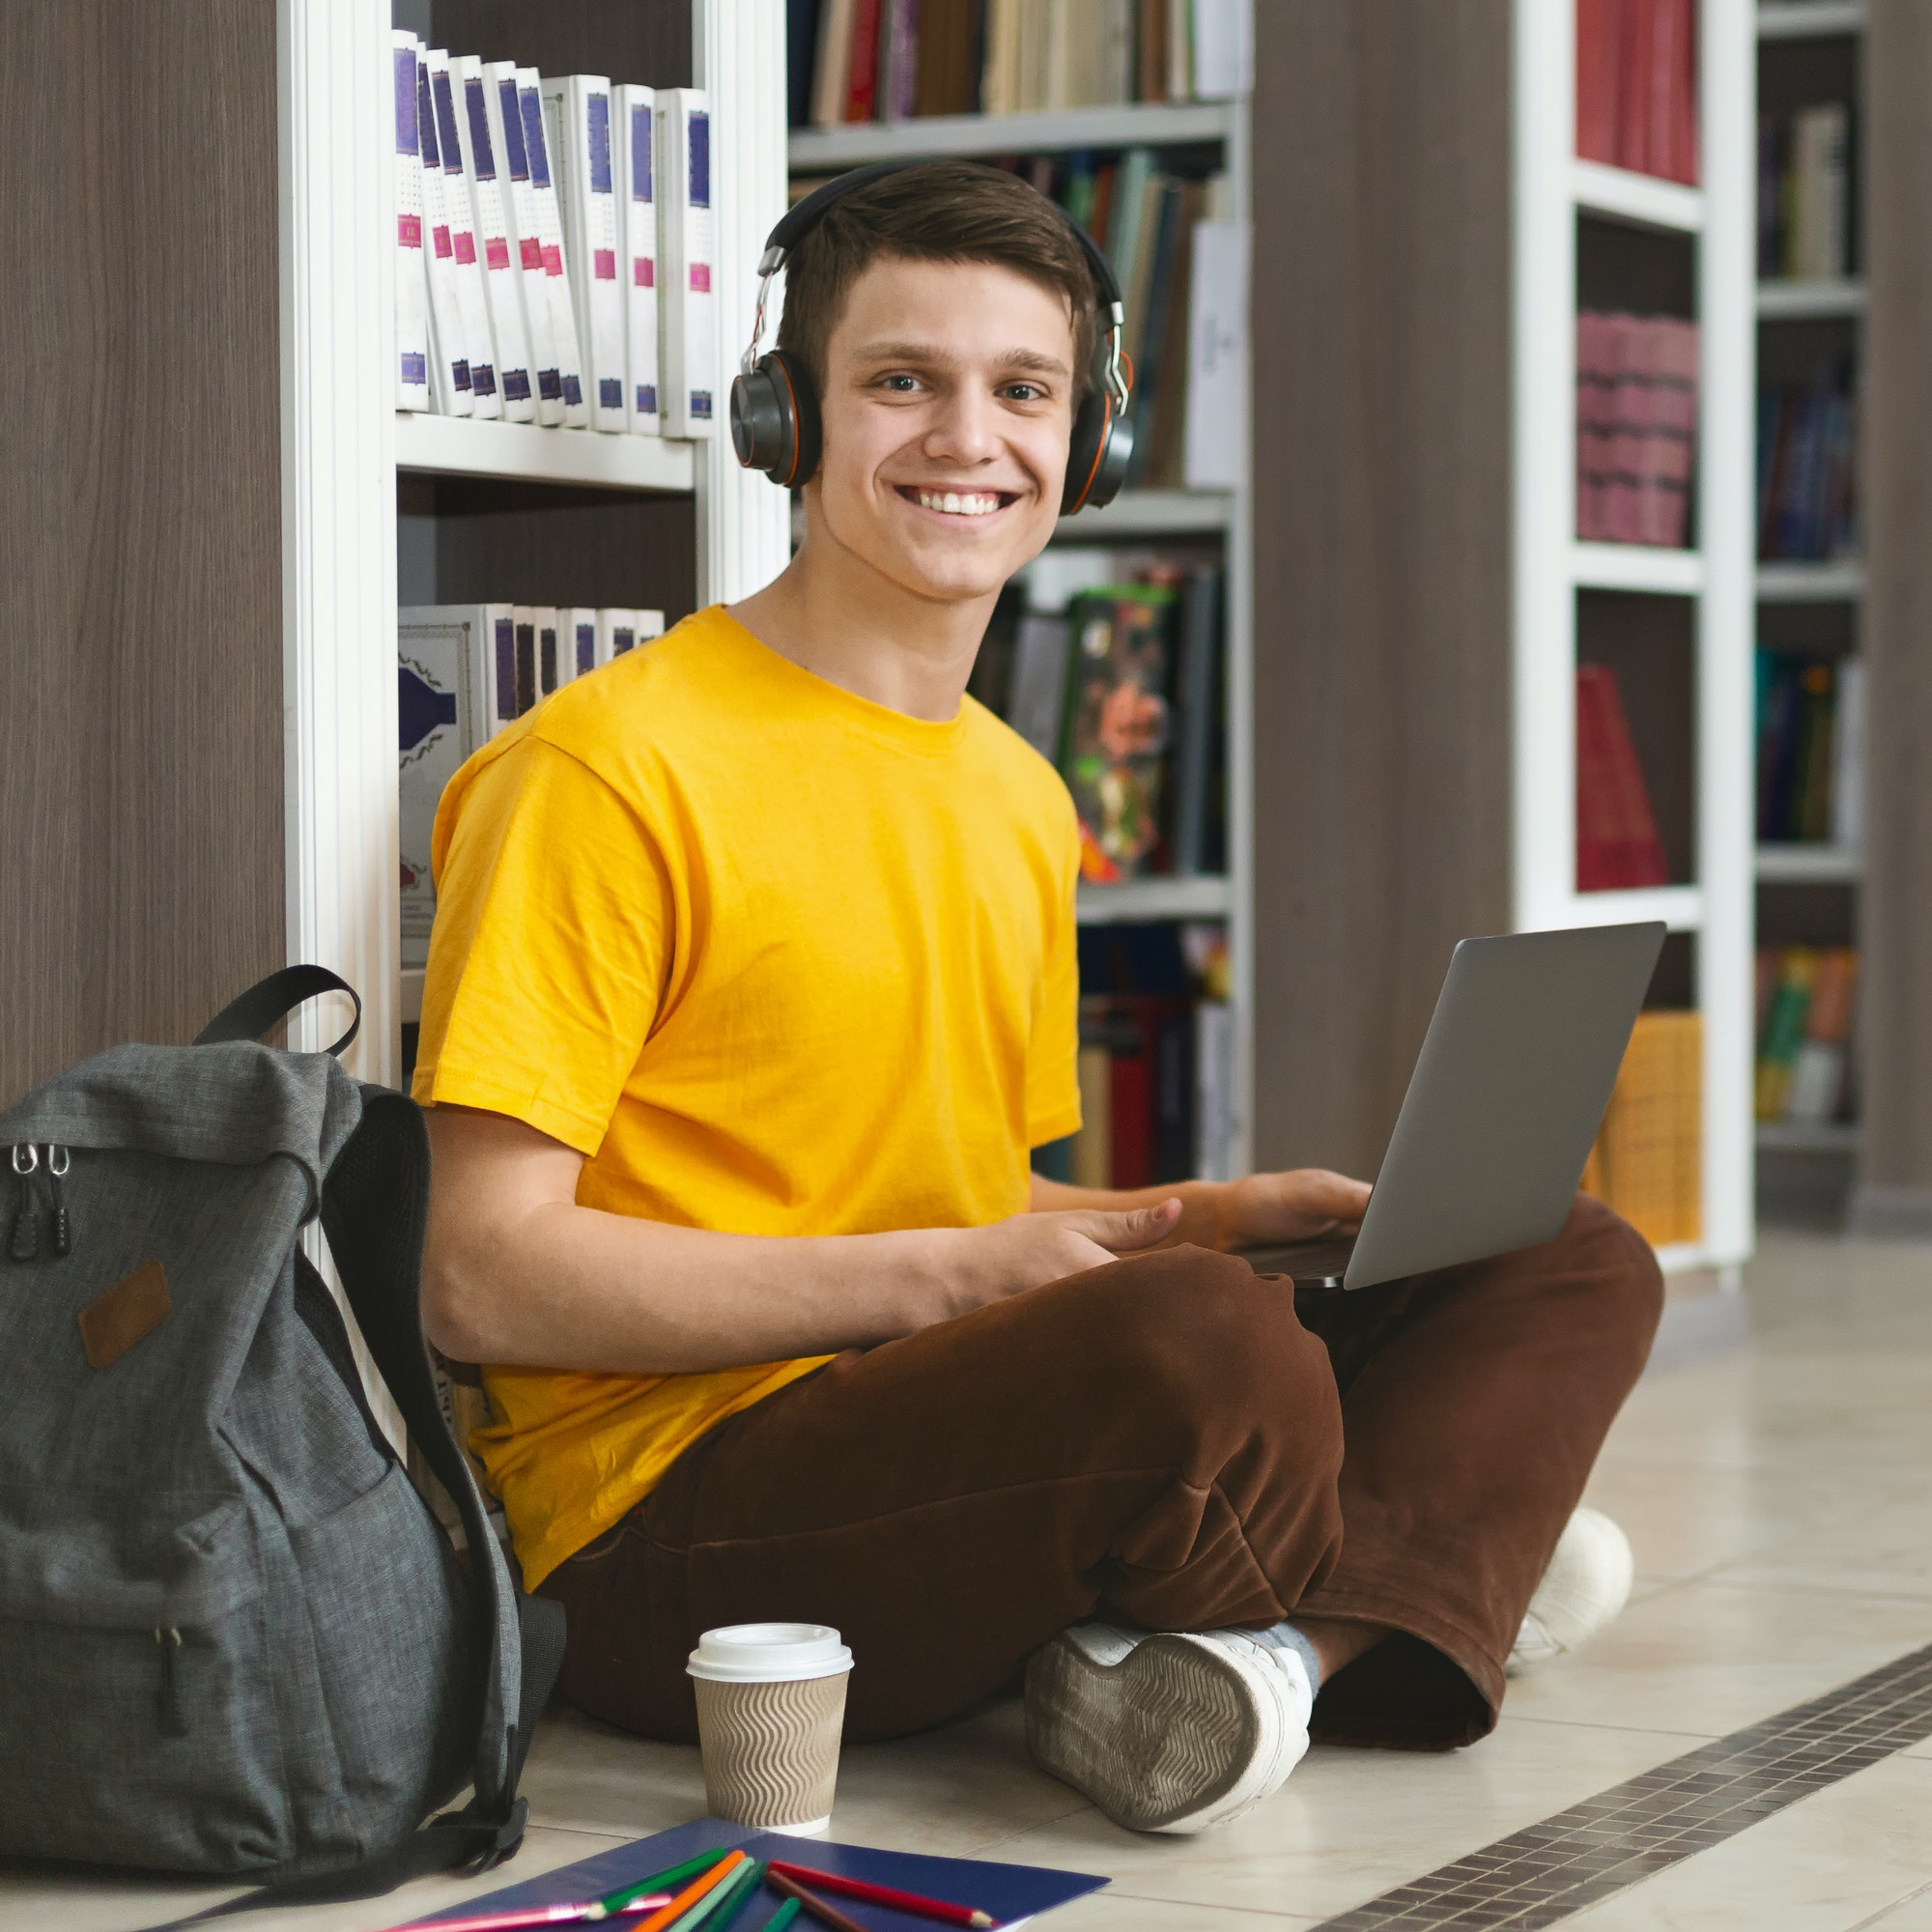 Portrait of cheerful student working on new project at library